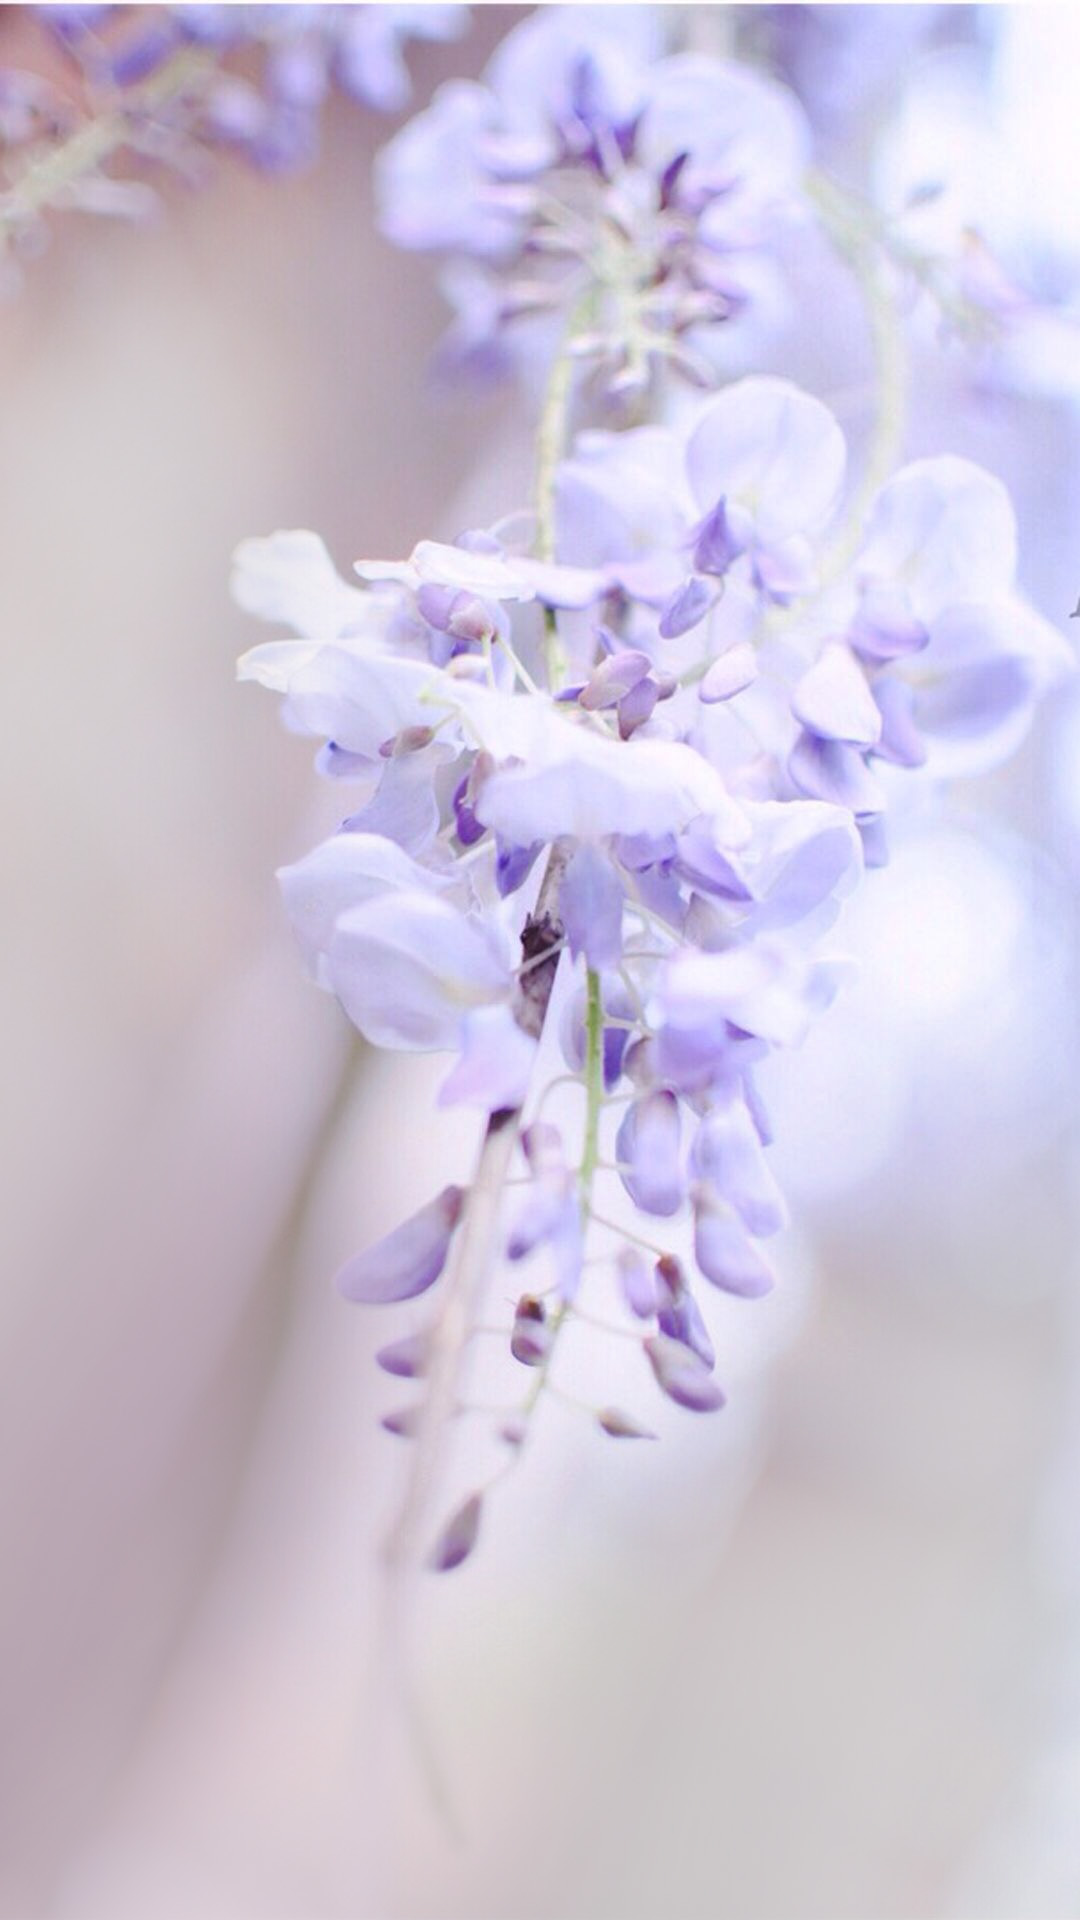 light purple flowers background  flower  flowers  clear background image for free download